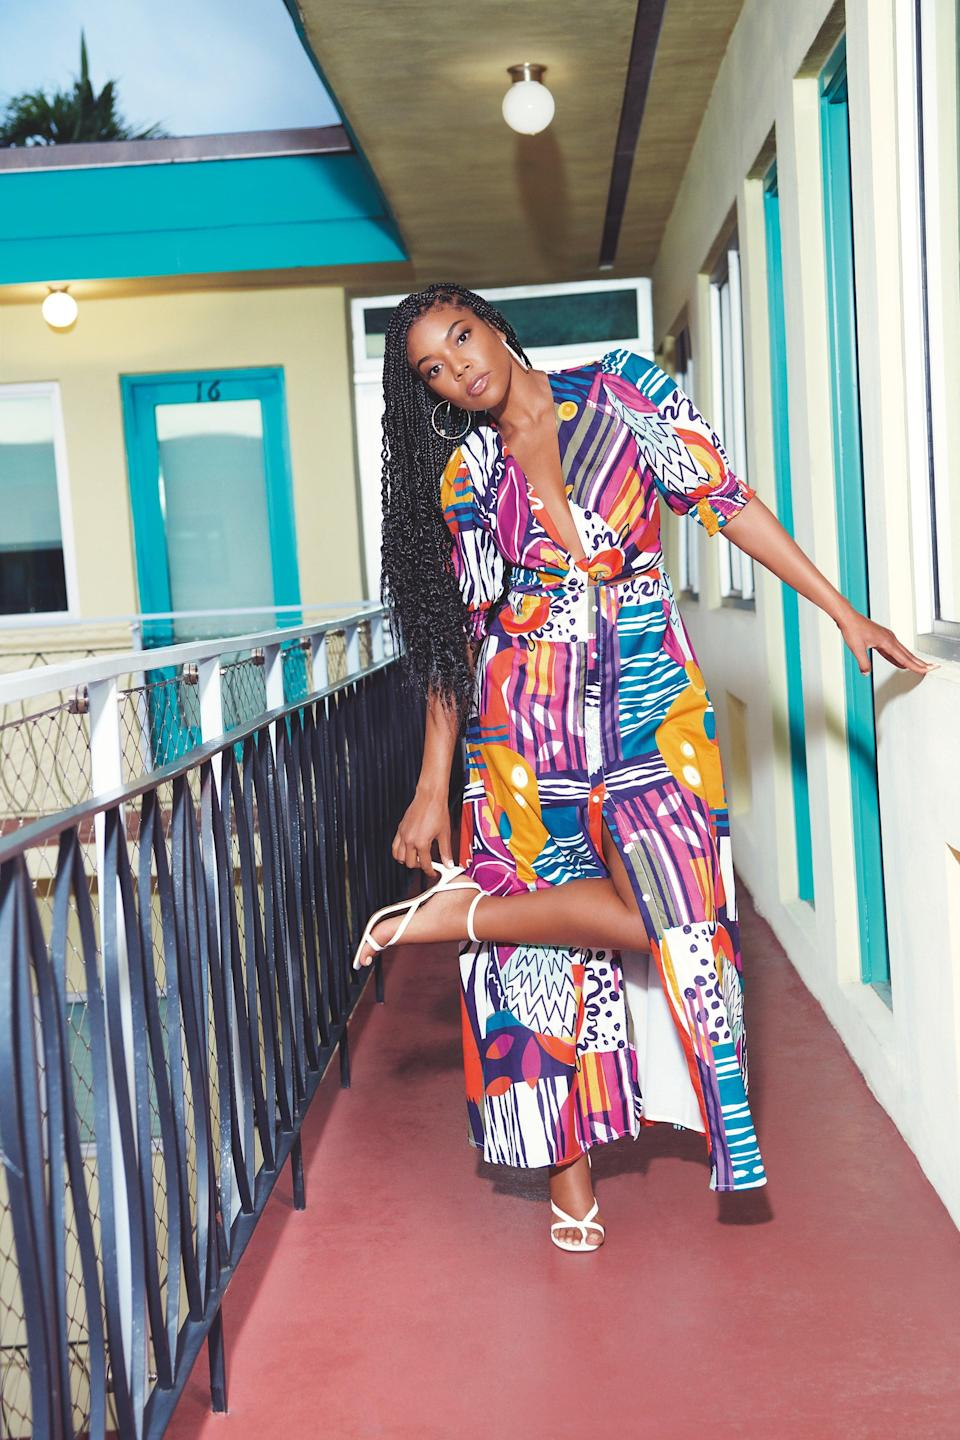 """<br> <br> <strong>New York & Company x Gabrielle Union</strong> Twist-Front Print Maxi Dress, $, available at <a href=""""https://go.skimresources.com/?id=30283X879131&url=https%3A%2F%2Fwww.nyandcompany.com%2Ftwist-front-print-maxi-dress-gabrielle-union-collection%2FA-prod20620024%2F%3FAn%3D675084437%26prodNo%3D1"""" rel=""""nofollow noopener"""" target=""""_blank"""" data-ylk=""""slk:New York & Company"""" class=""""link rapid-noclick-resp"""">New York & Company</a> <span class=""""copyright"""">Photographed by Nino Muñoz.</span>"""